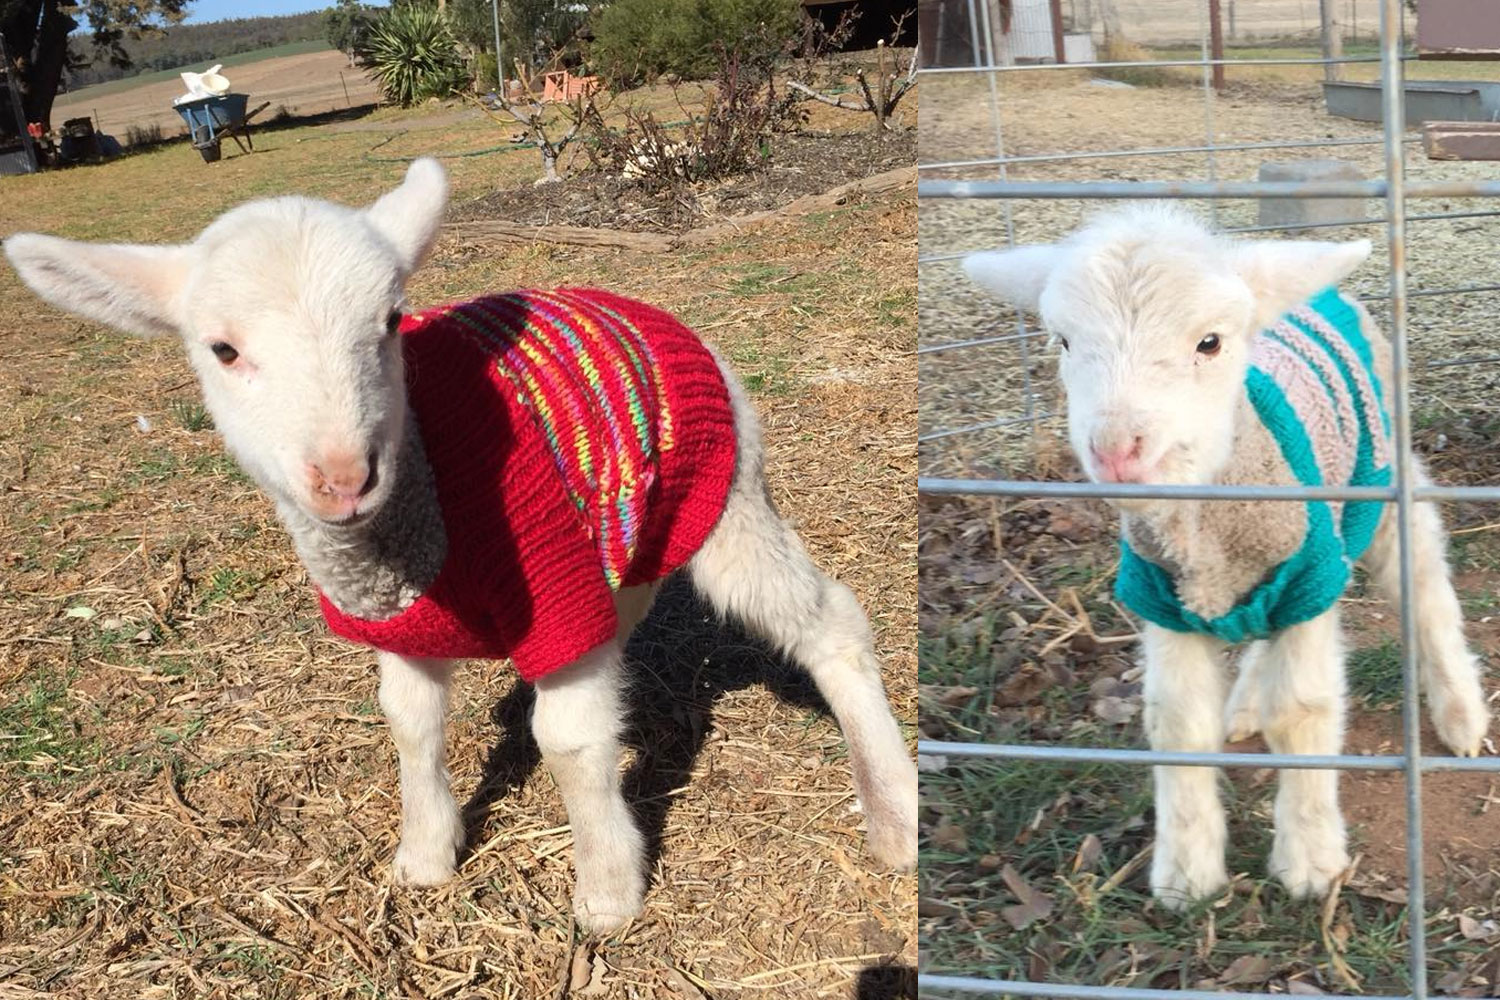 dbe6d51bd How to help by knitting jumpers for lambs